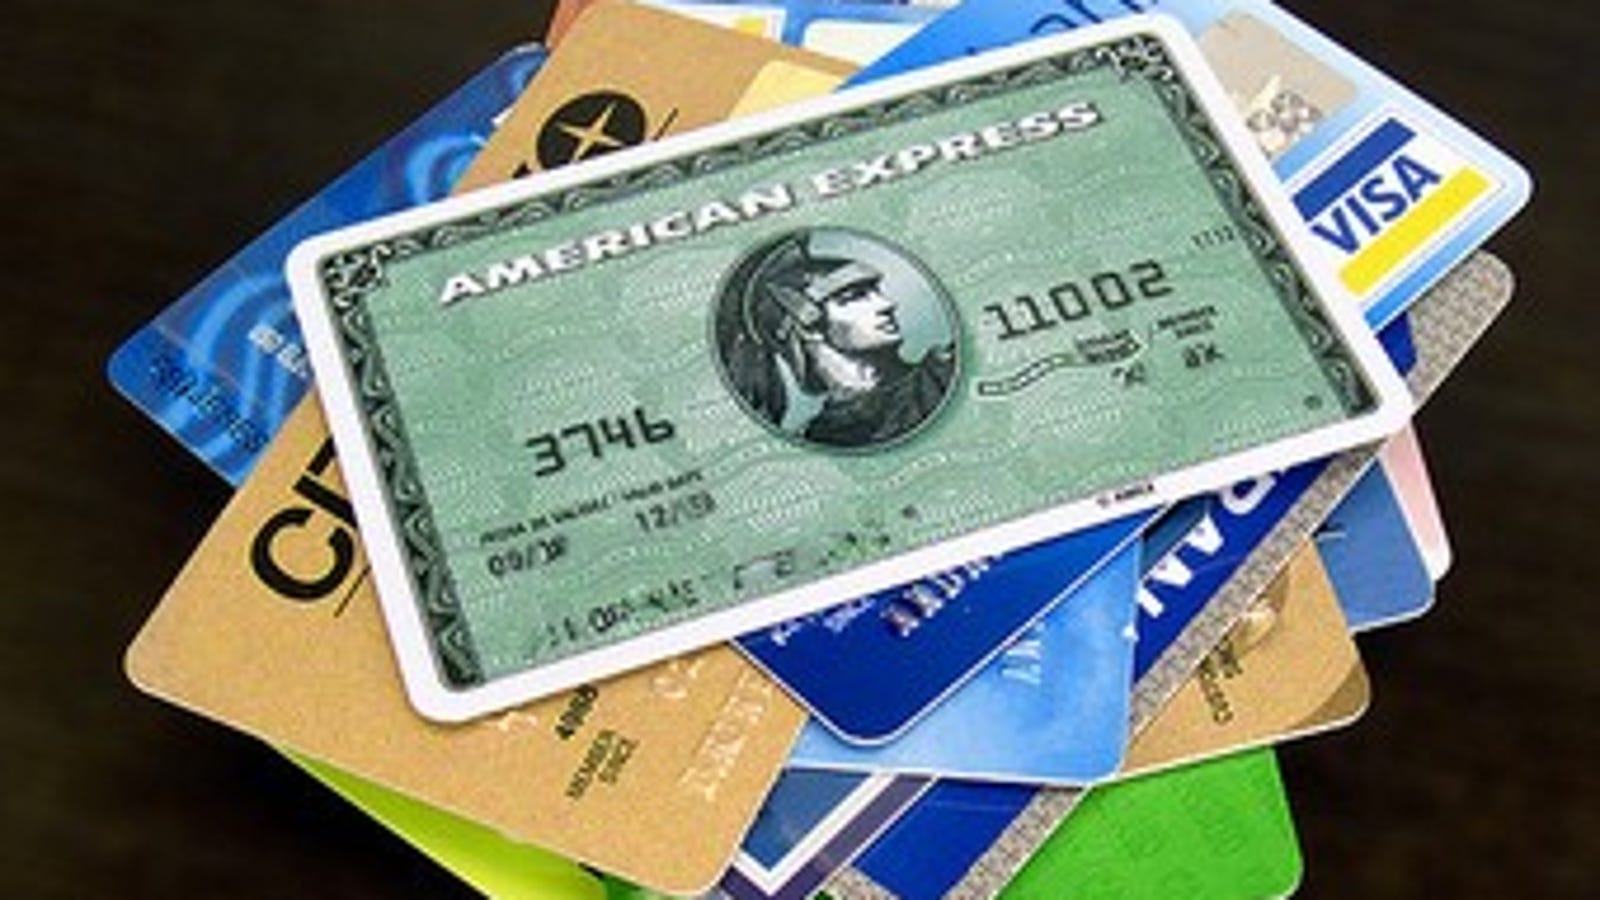 Skip the Extended Warranty; Use a Good Credit Card Instead